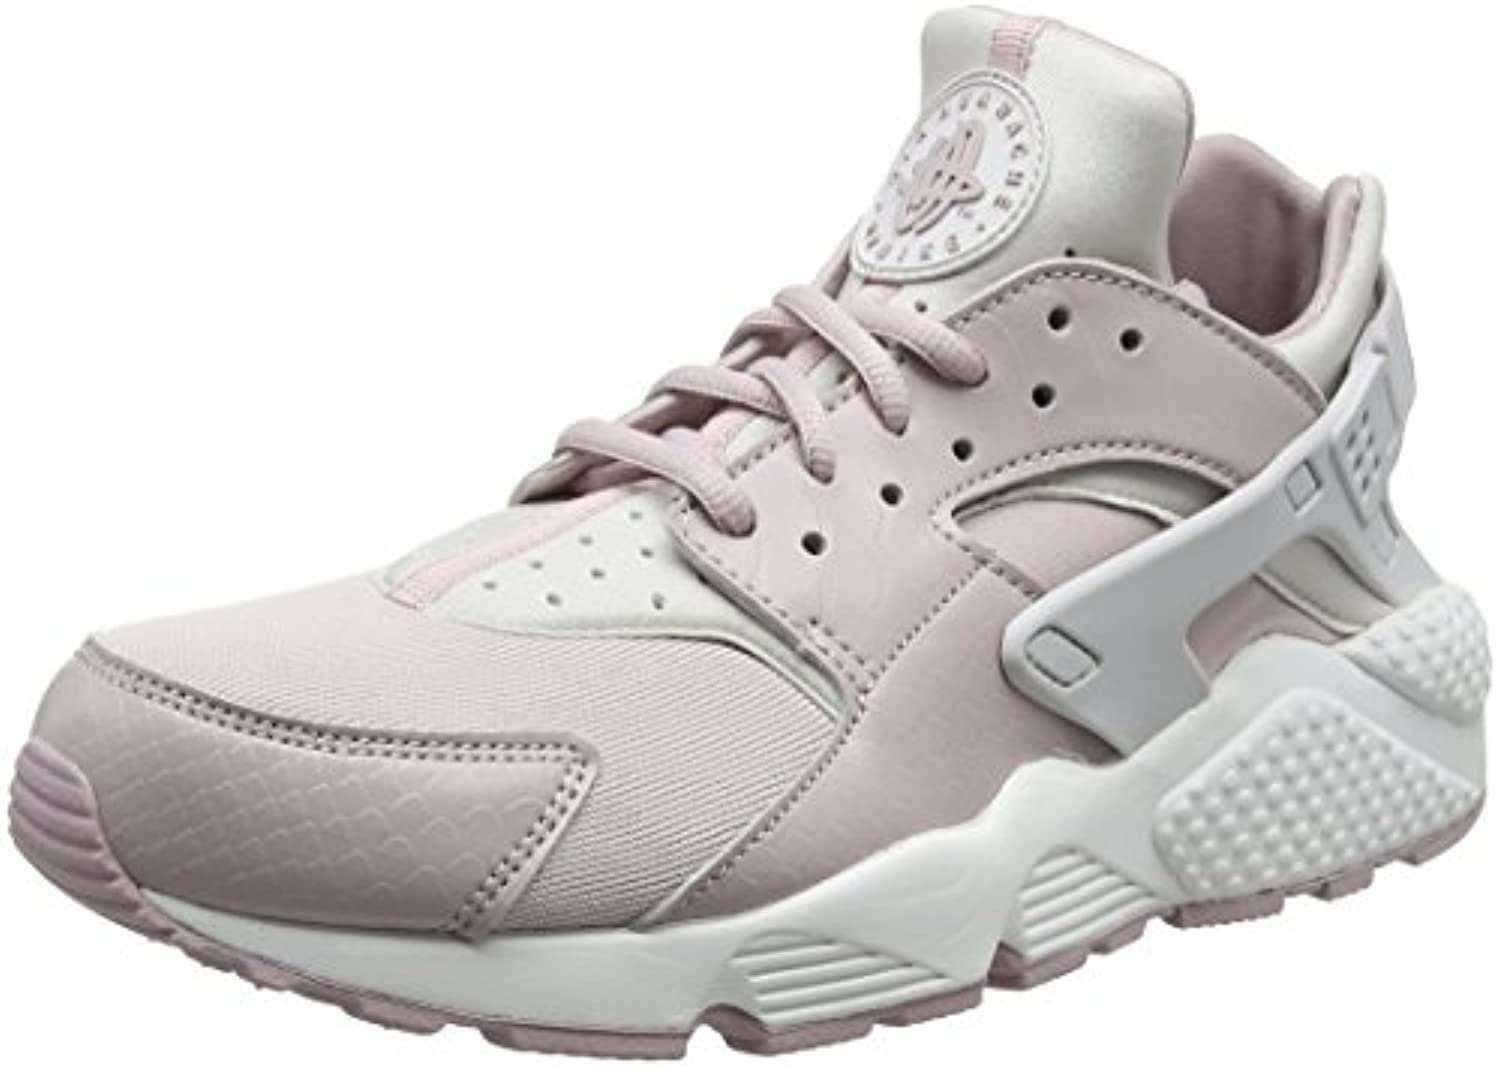 Nike Damen Air Huarache Run Fitnessschuhe, Mehrfarbig (Vast Grey/Particle R 029), 44.5 EU